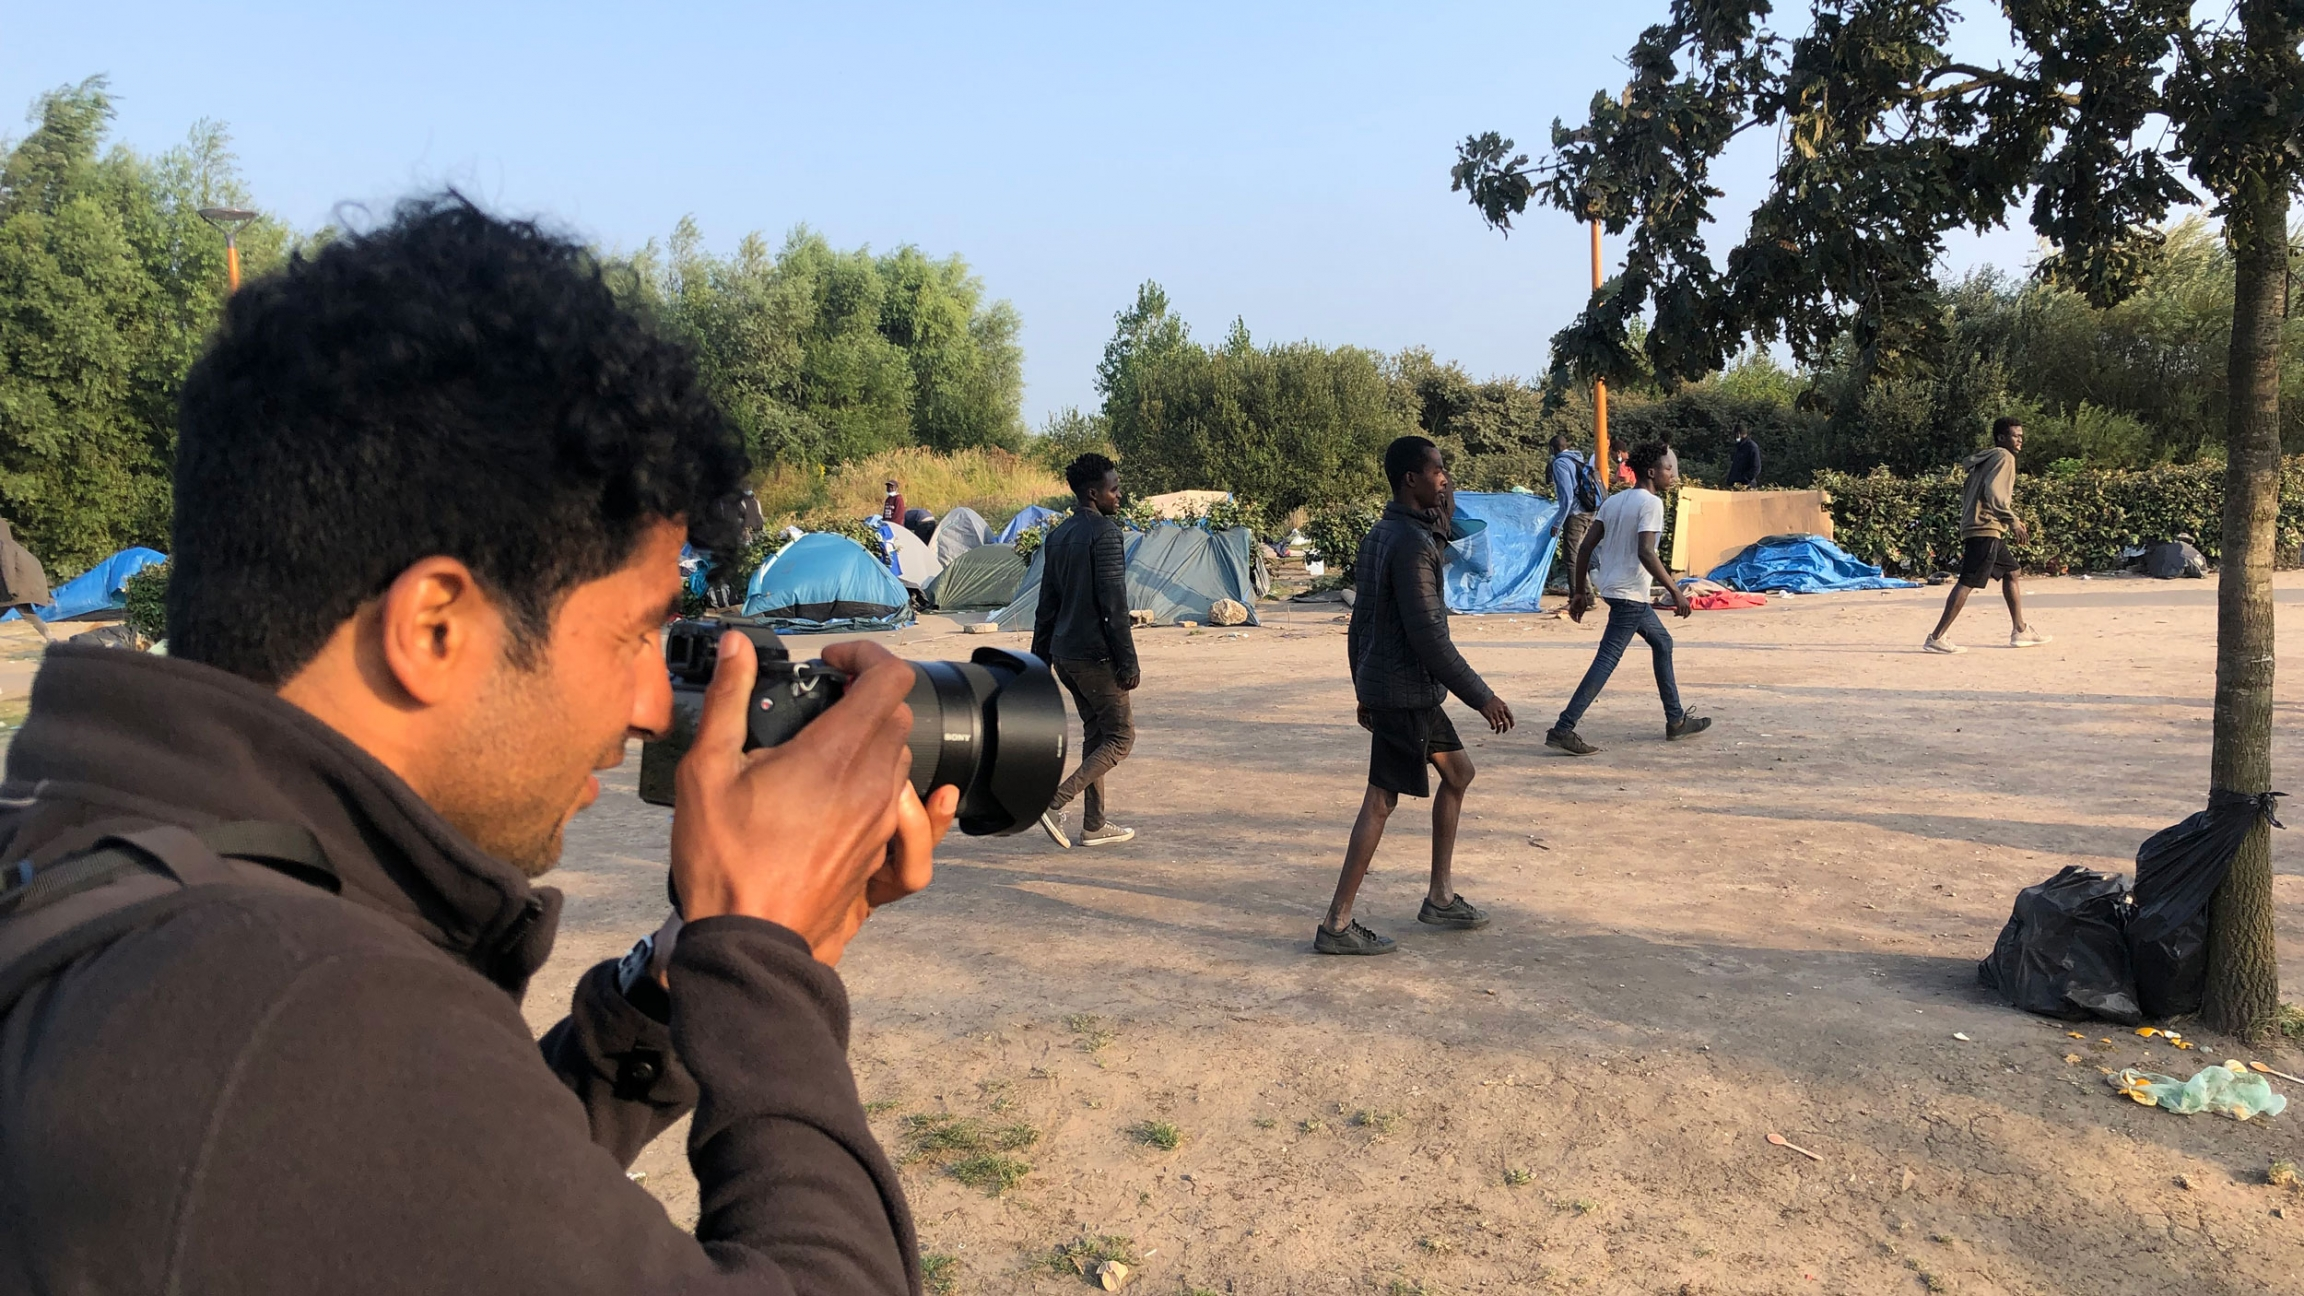 Abdul Saboor, an award-winning Afghan photographer in France, documents a soccer game at a refugee encampment in Calaís, France.